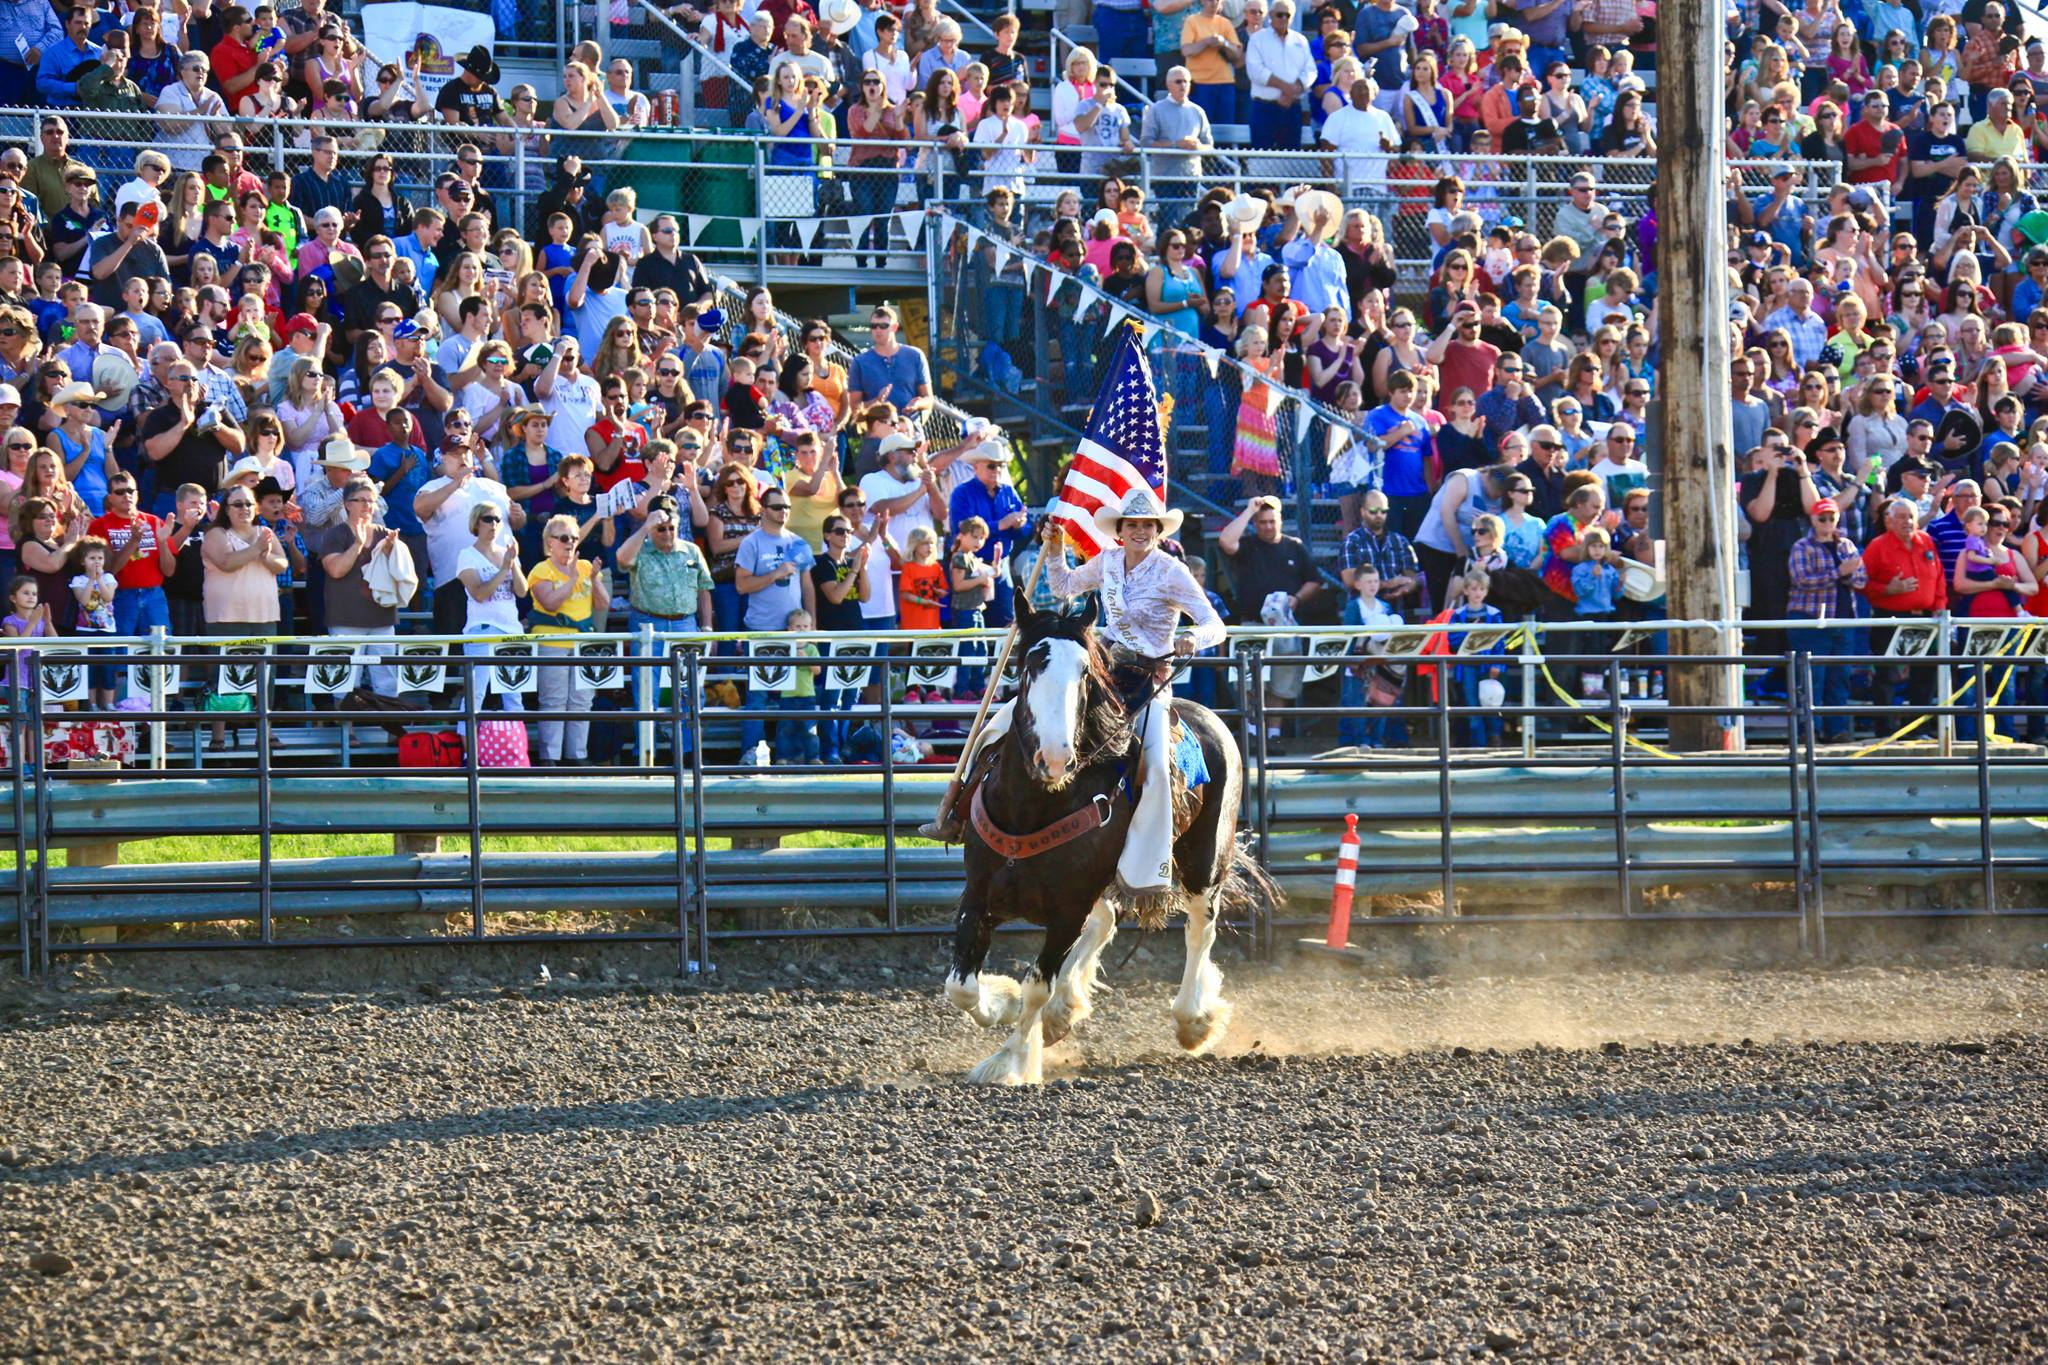 Eide Chrysler is a top-tier sponsor of the Mandan Rodeo Days Celebration.